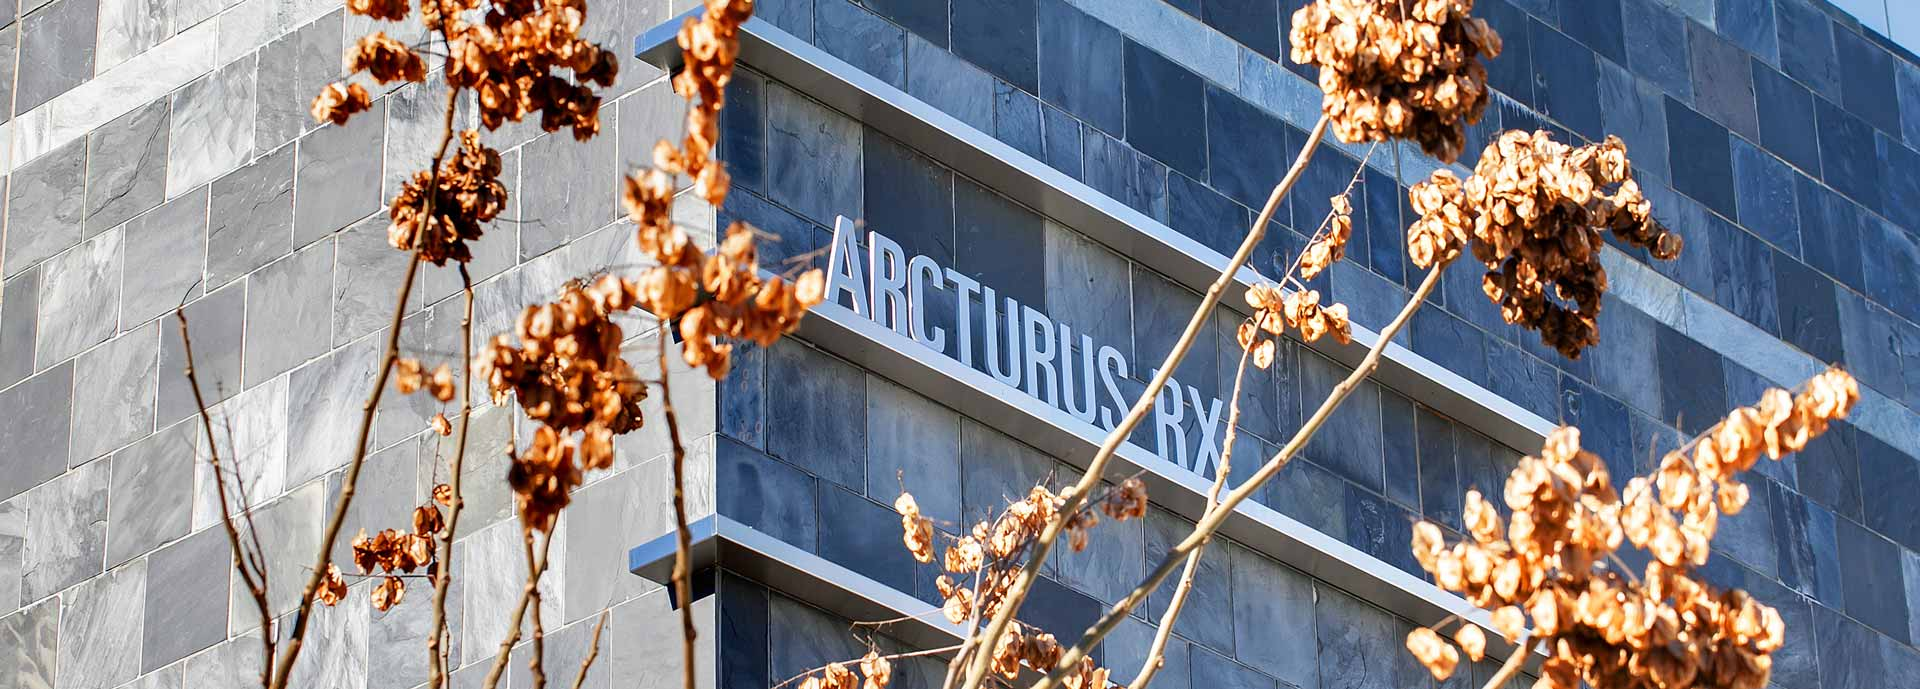 Arcturus Therapeutics News & Events